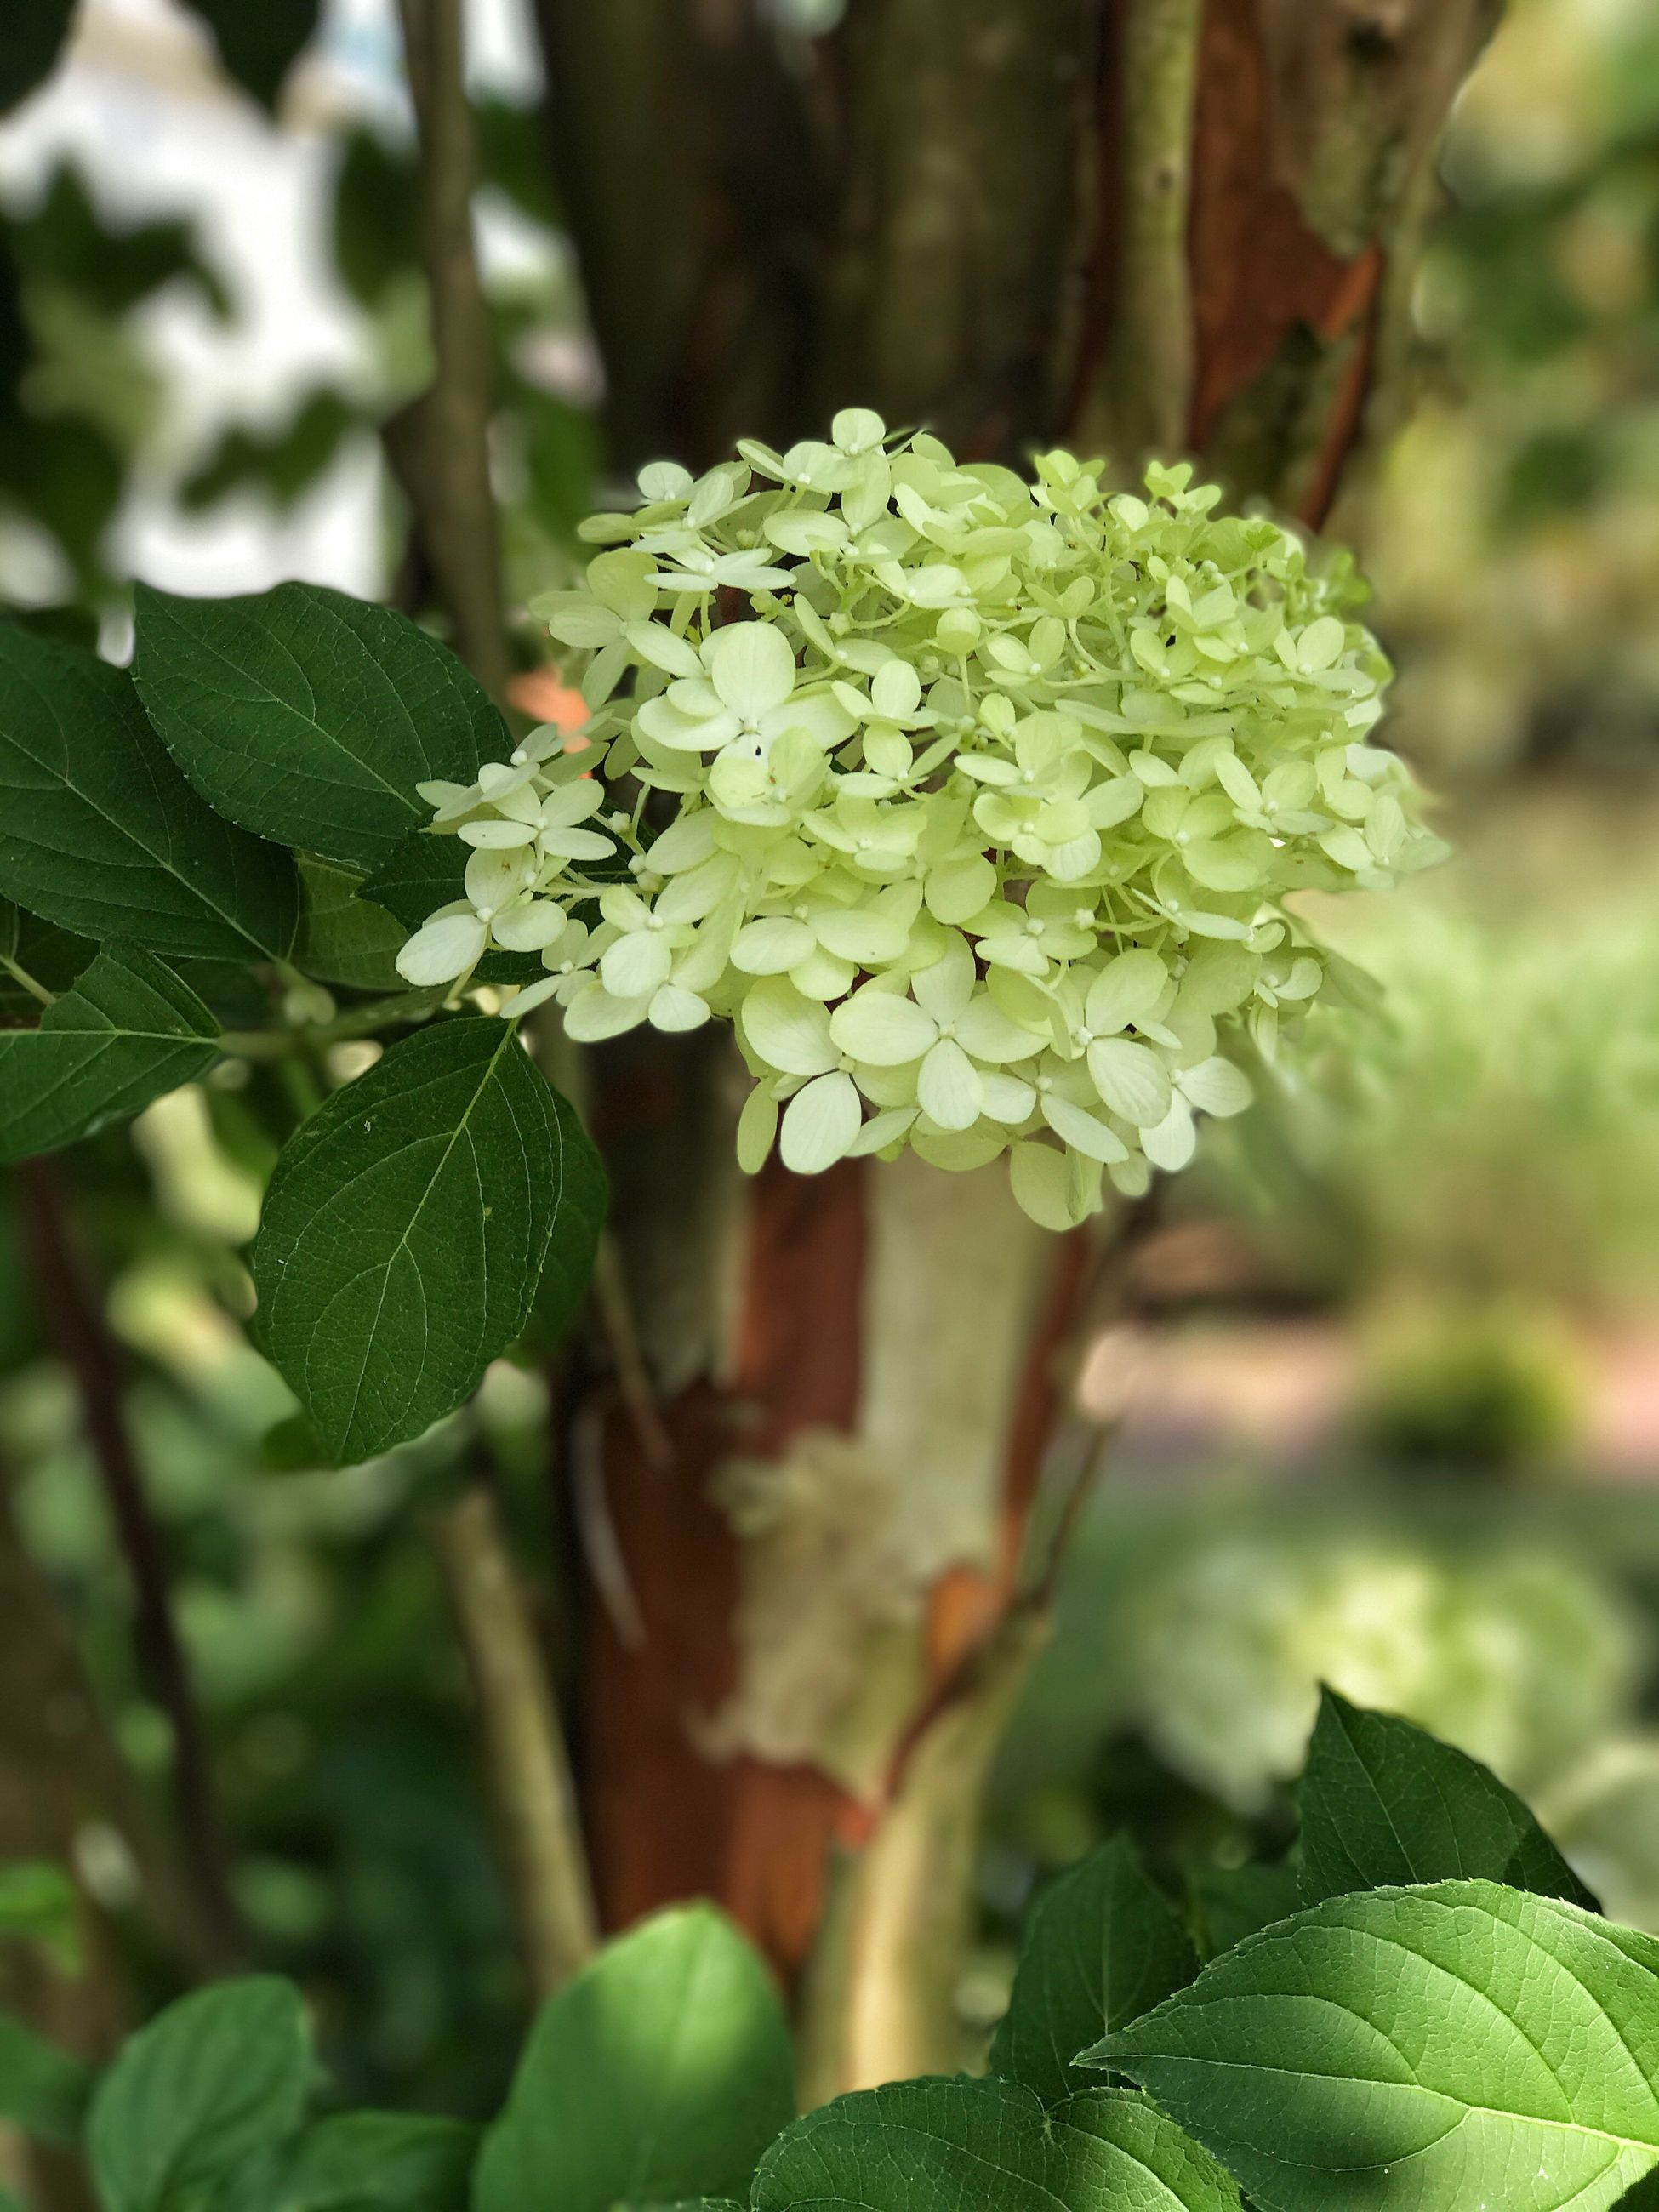 leaf, green color, growth, flower, nature, beauty in nature, freshness, plant, fragility, outdoors, petal, day, no people, close-up, flower head, blooming